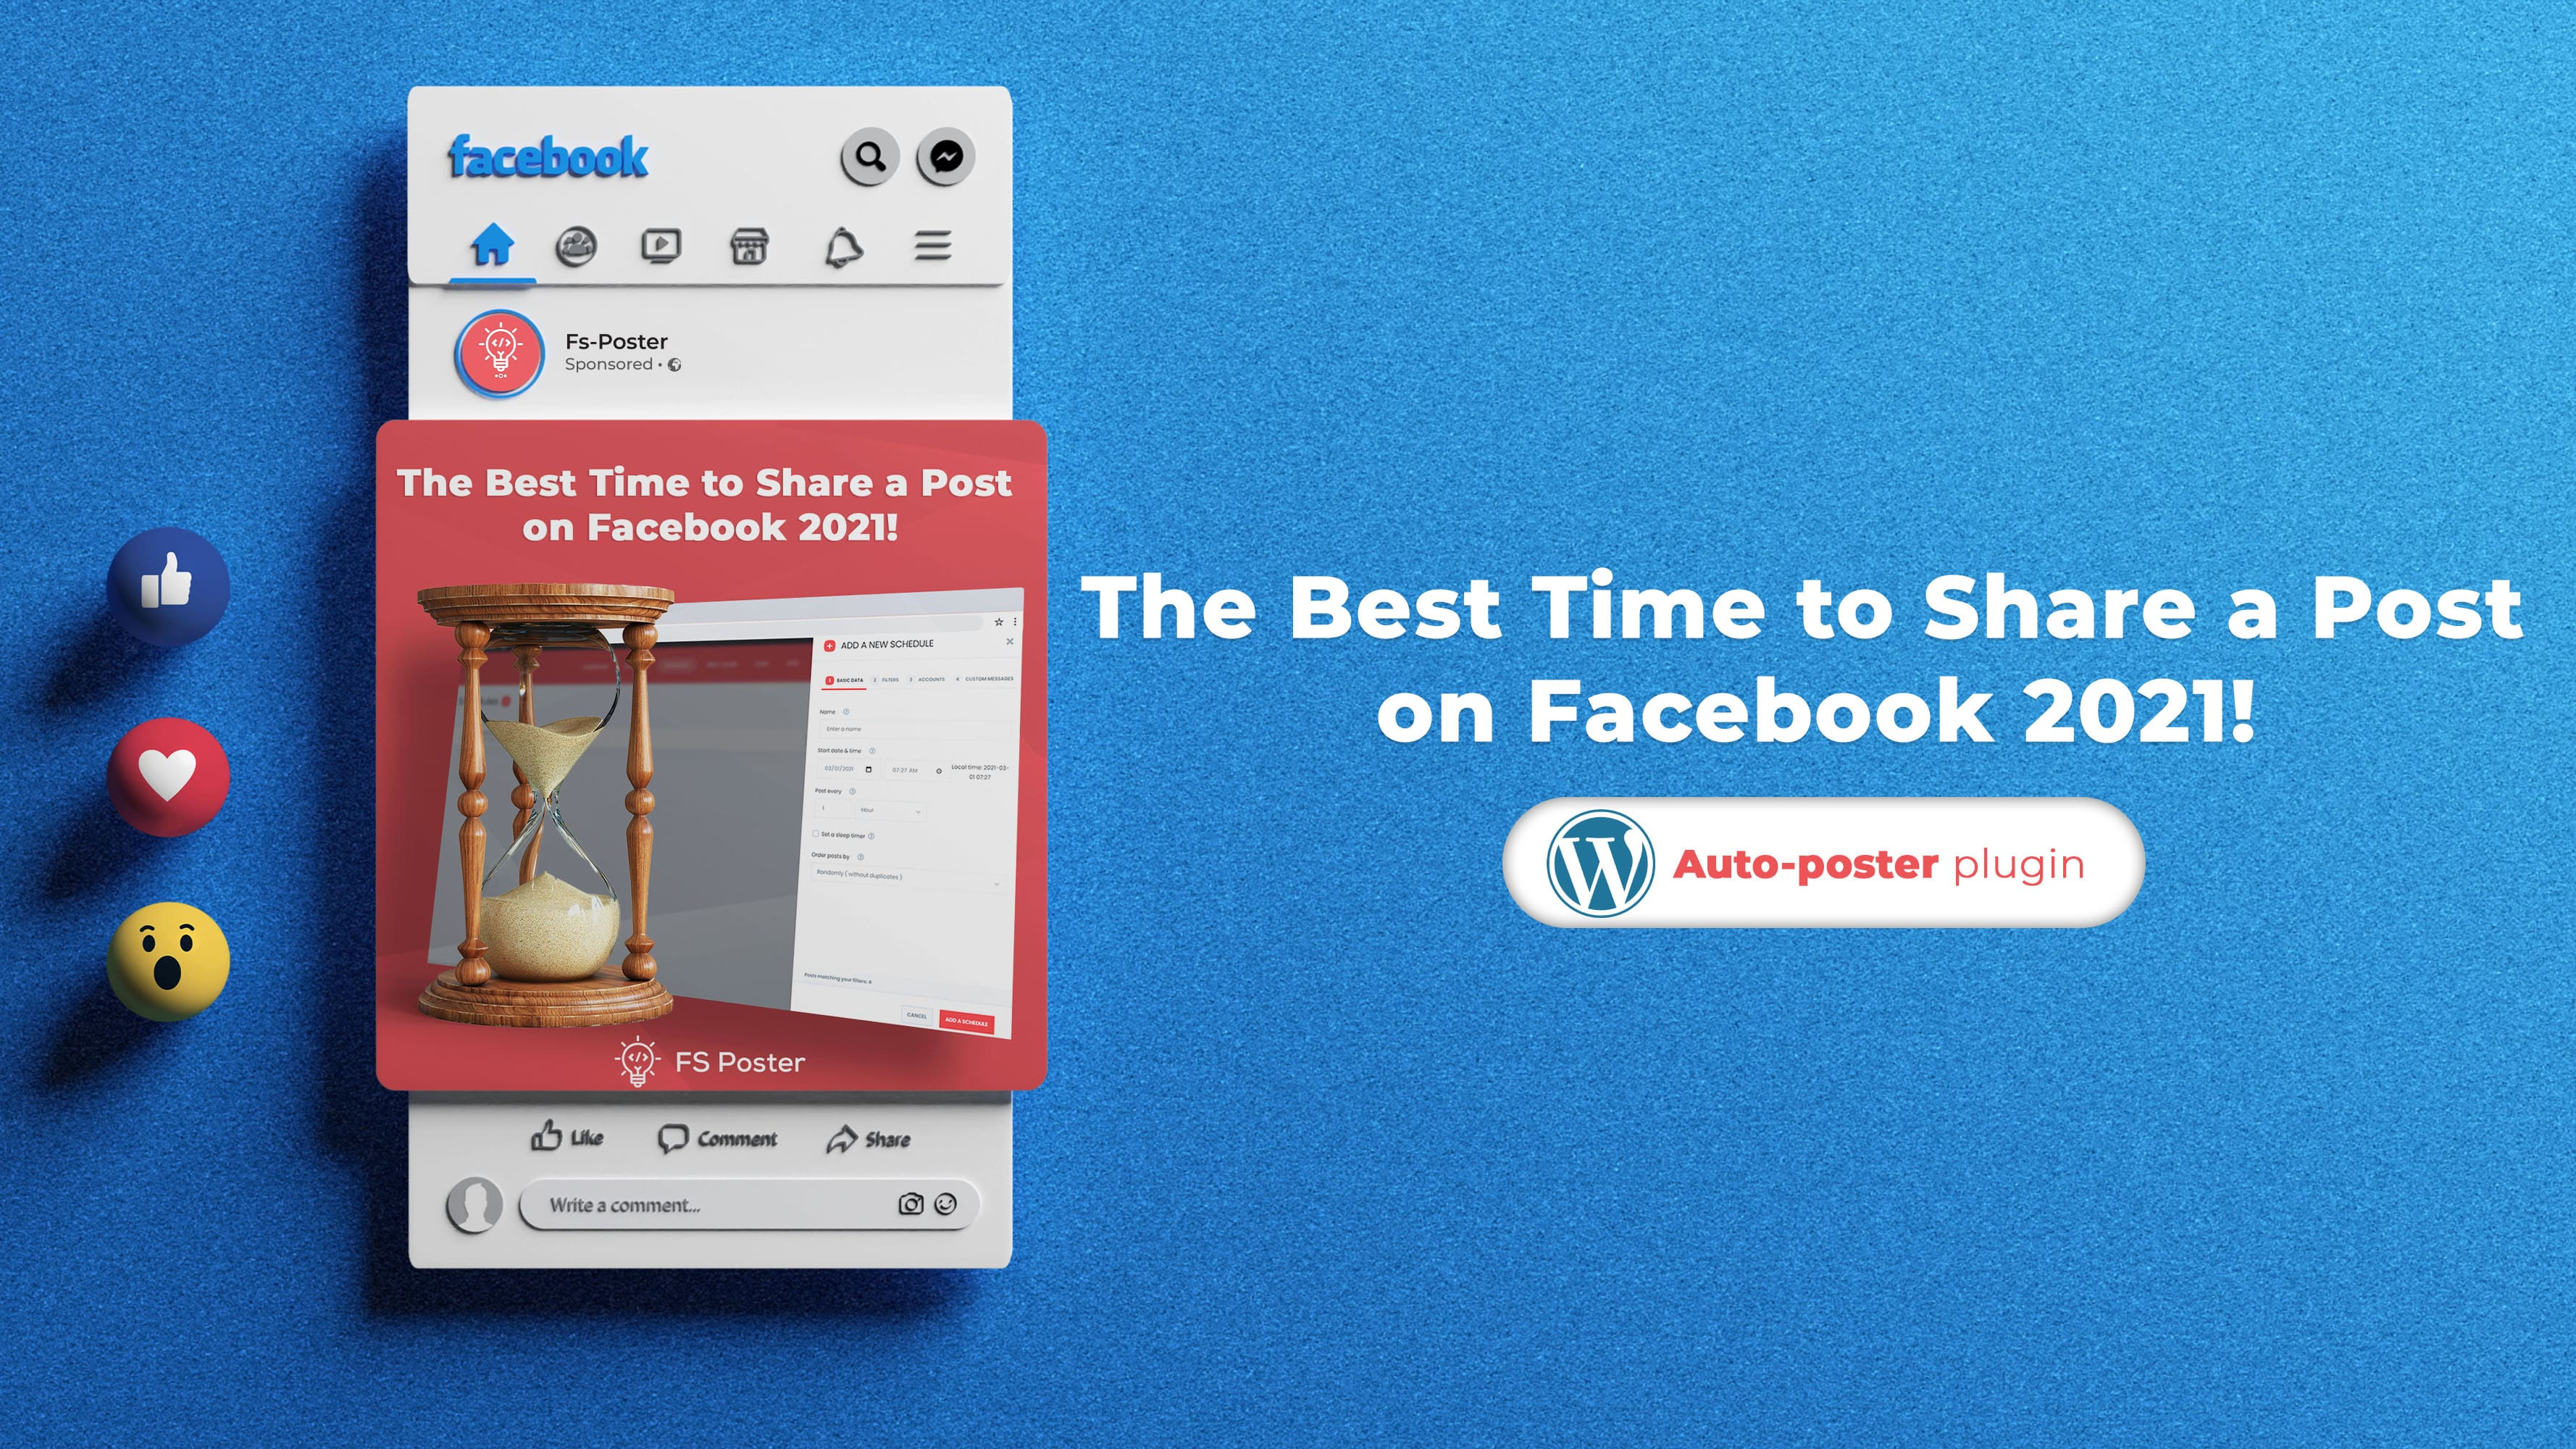 The Best Time to Share a Post on Facebook 2021